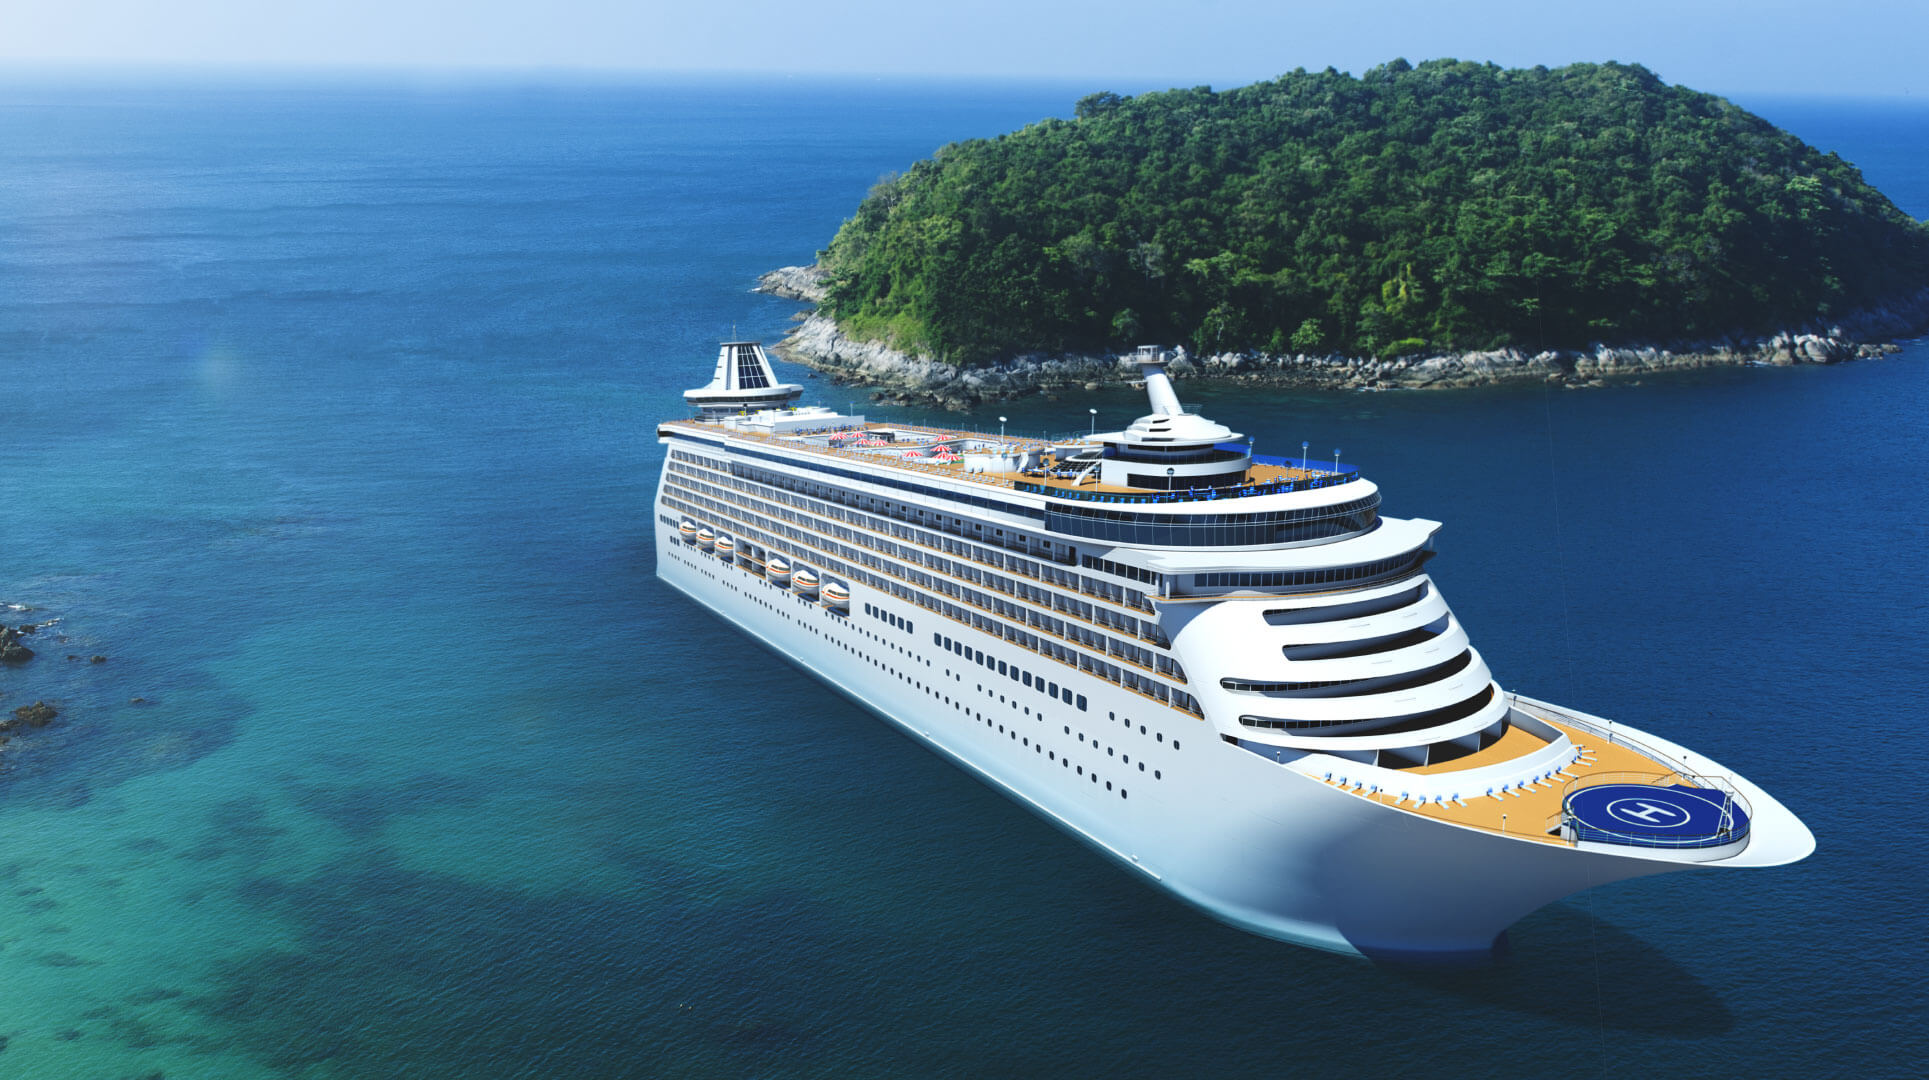 A cruise loyalty program helps cruise industry companies to engage & retain their loyal customers